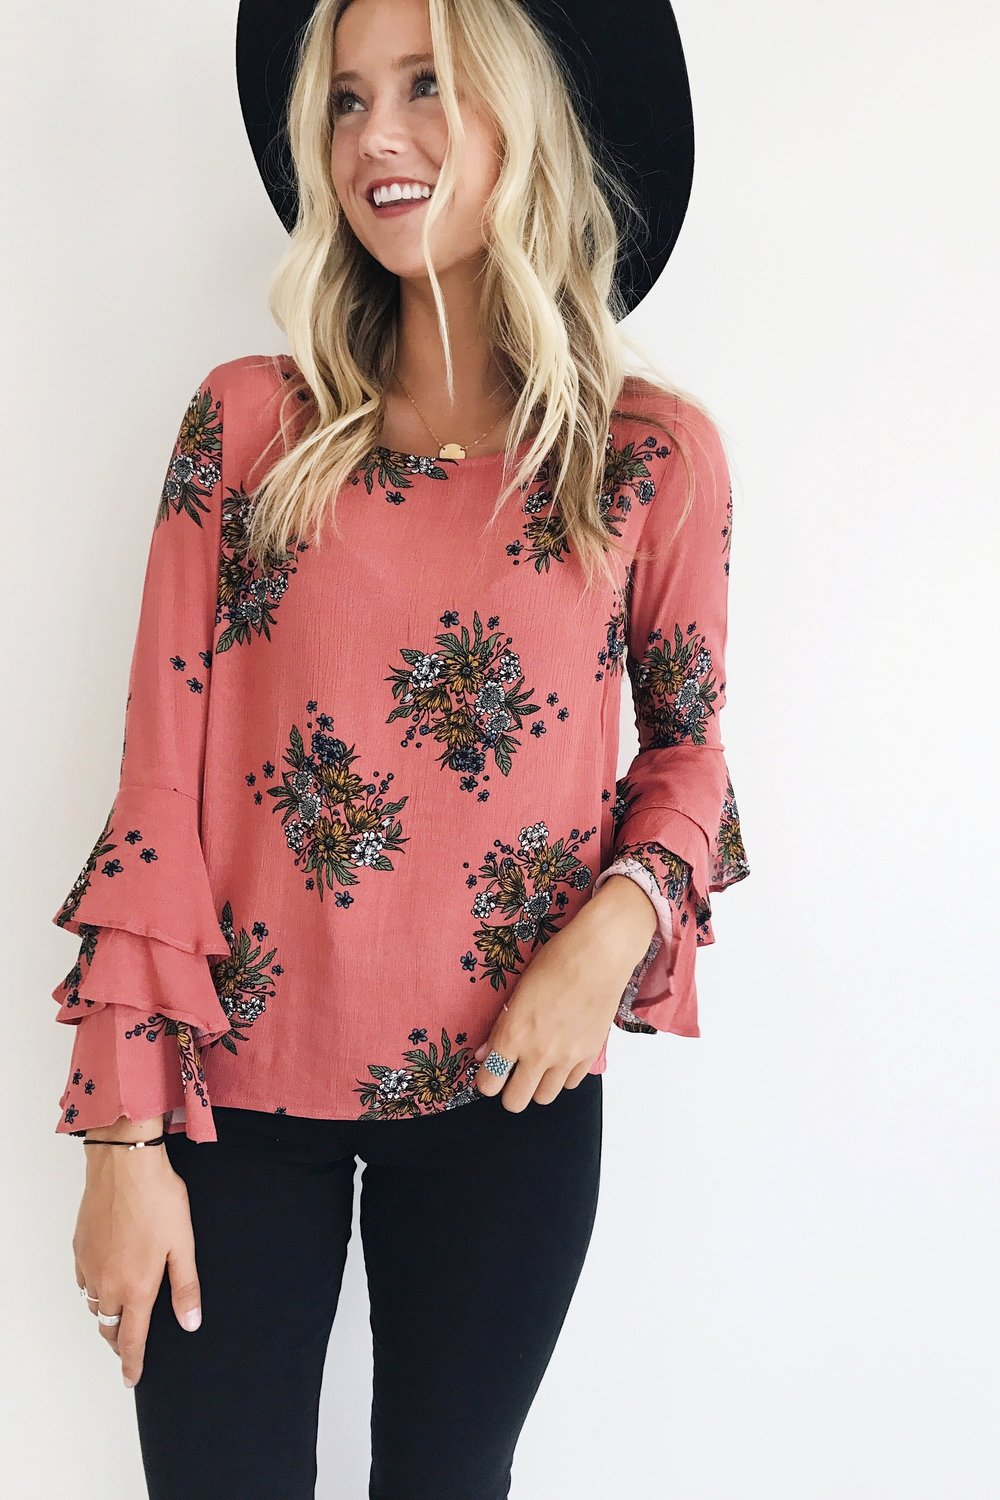 Apple Floral Blouse in Dark Rose